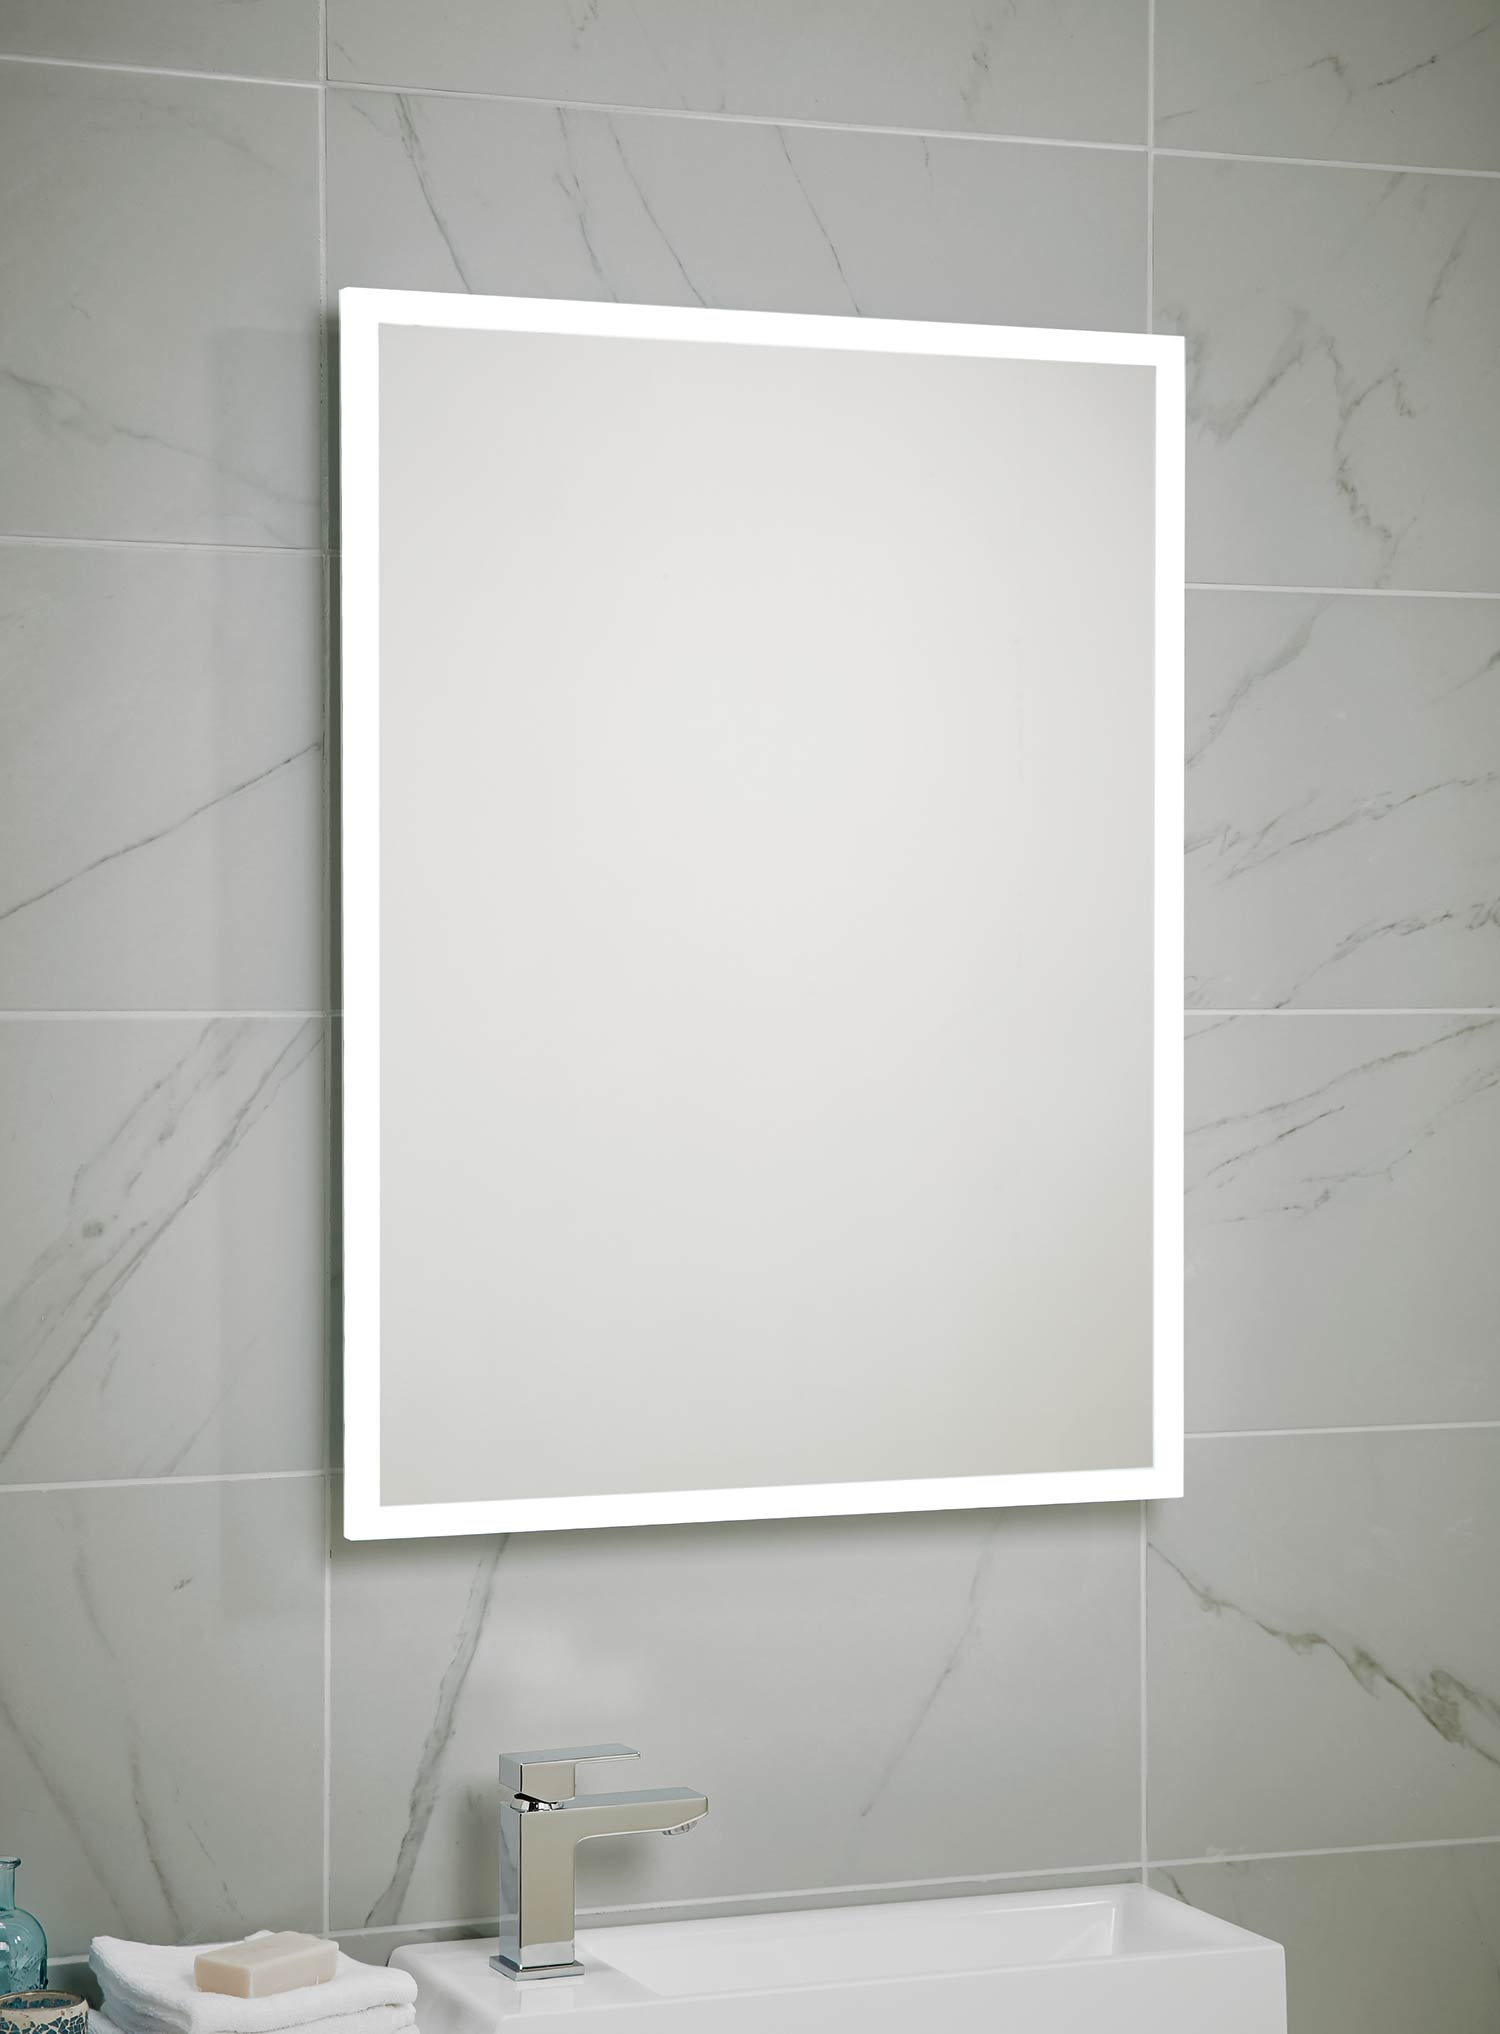 Moscow led mirror 600 x 800 bath giant for Mirror 800 x 600